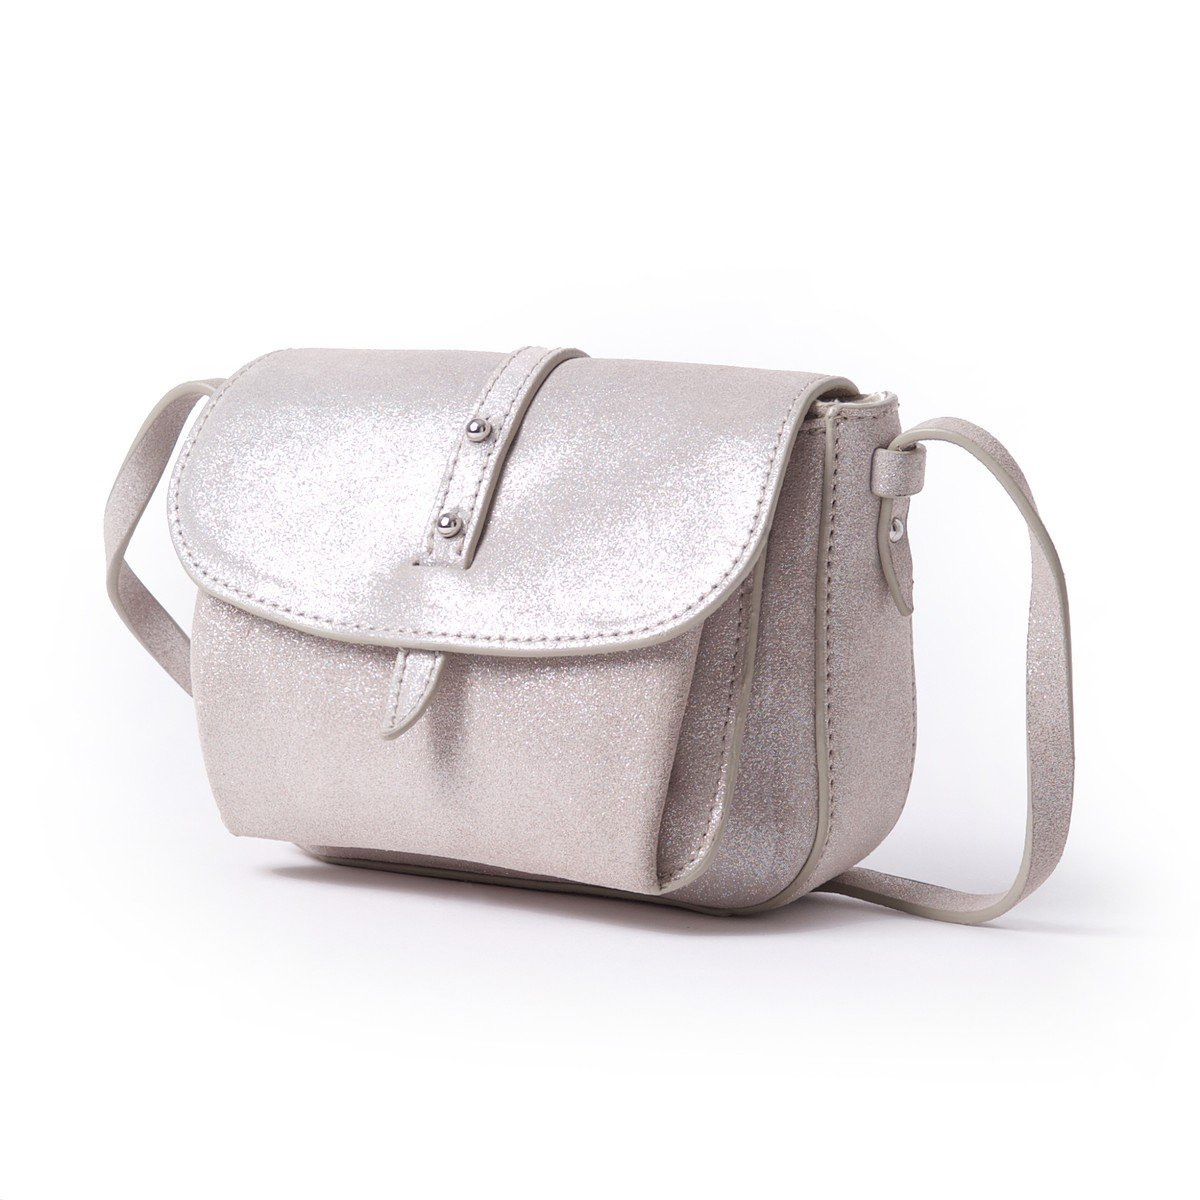 Esprit Womens Leather Handbag With Shoulder Strap Grey Size One Size by La Redoute